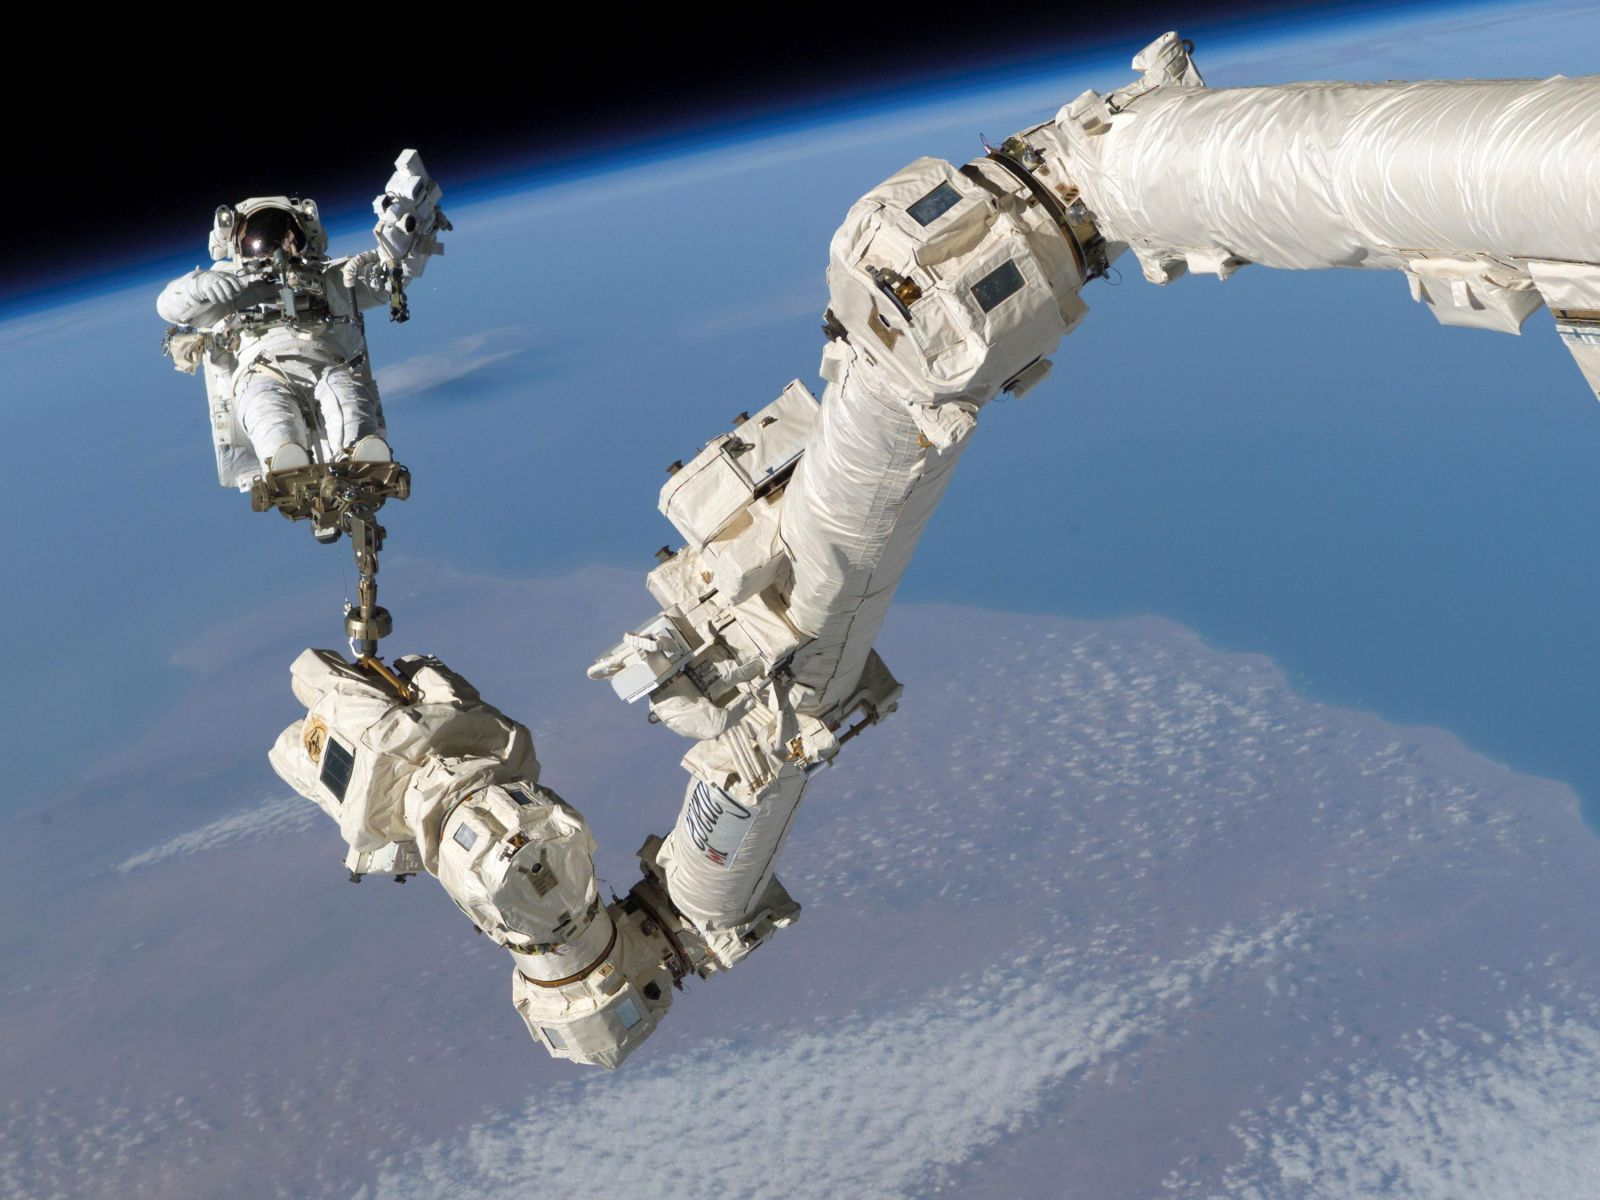 NASA astronaut Steve Robinson rides Canadarm2 to a work area in a spacewalk during the STS-114 mission to the International Space Station in 2005. Photo Credit: NASA